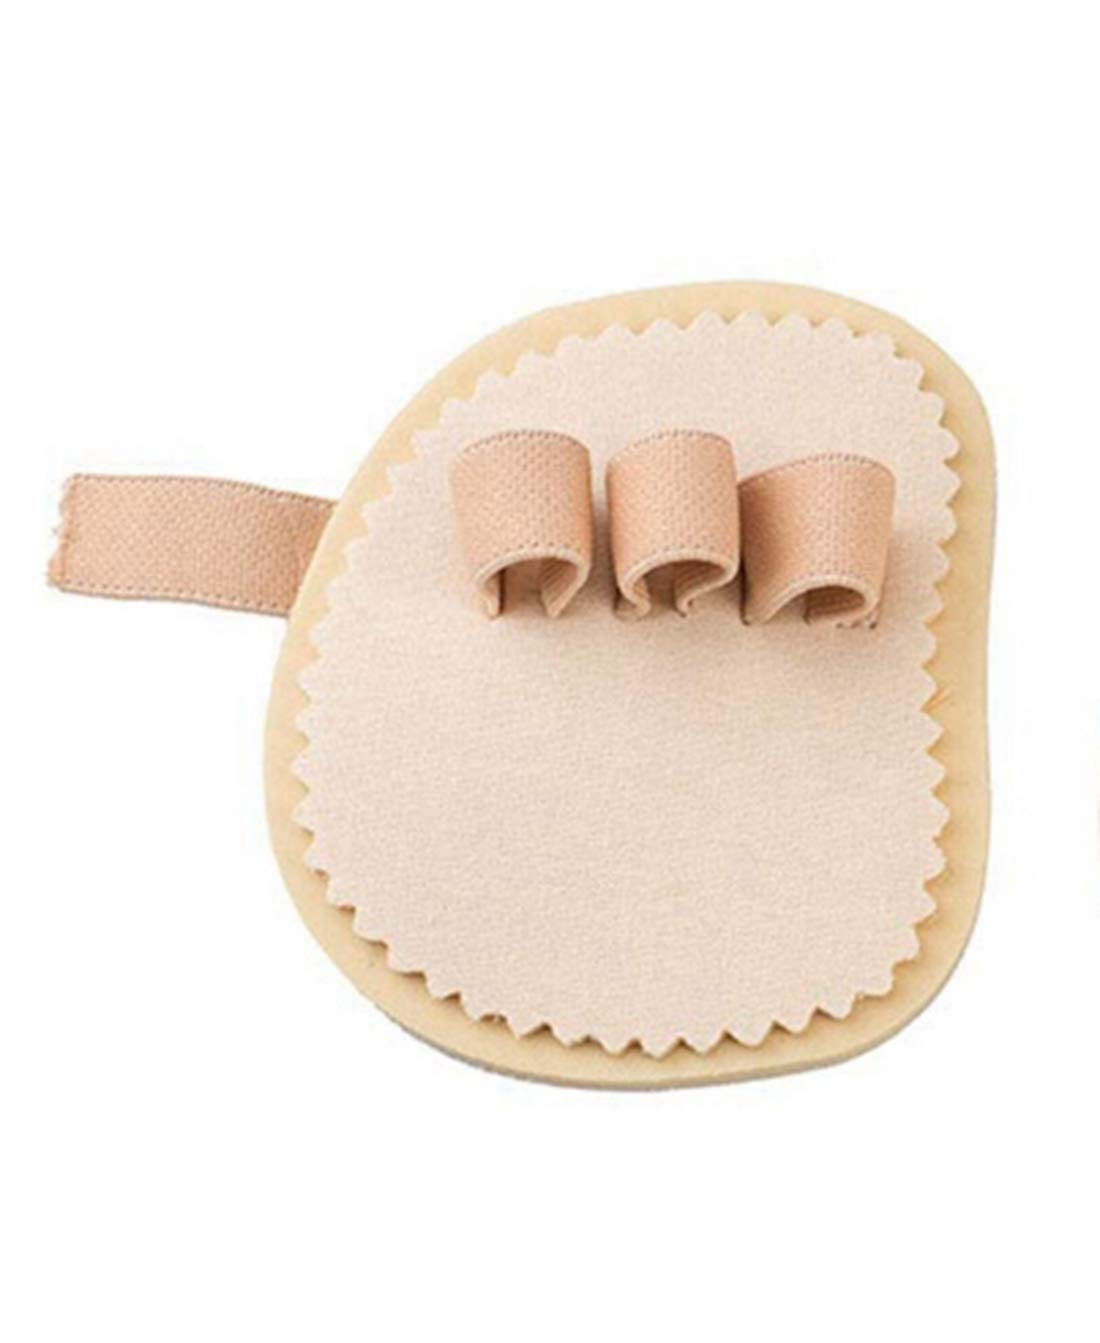 Toe Straightener Hammer Toes Corrector Pack for Claw Toe Mallet Toe Contracted Toe and Cured Toe Hammer Toe Splint